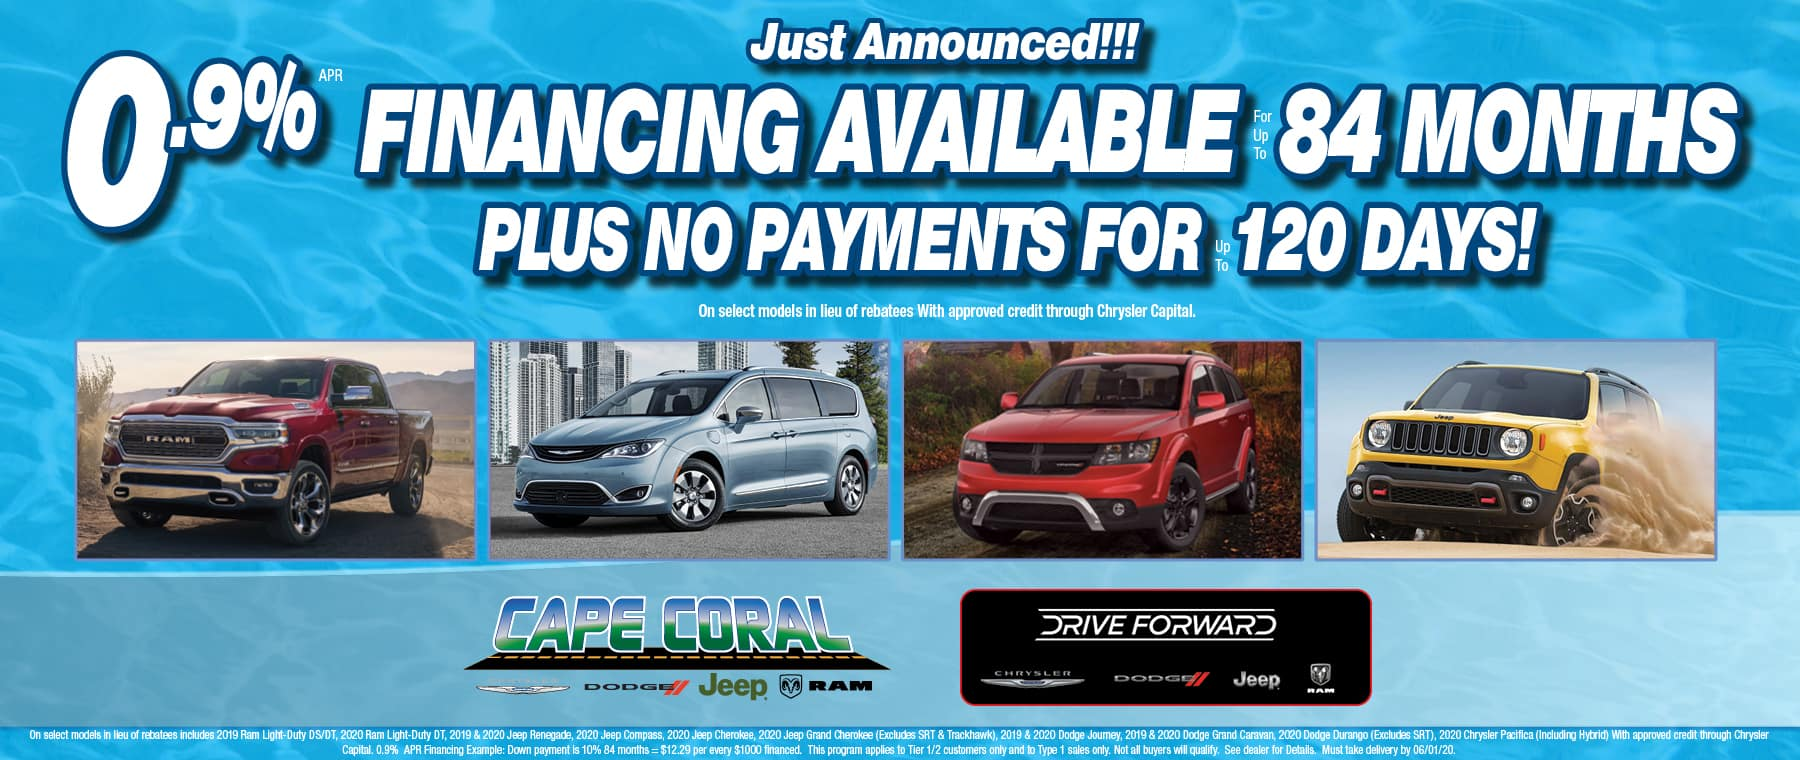 0.9% Financing for up to 84 Months!